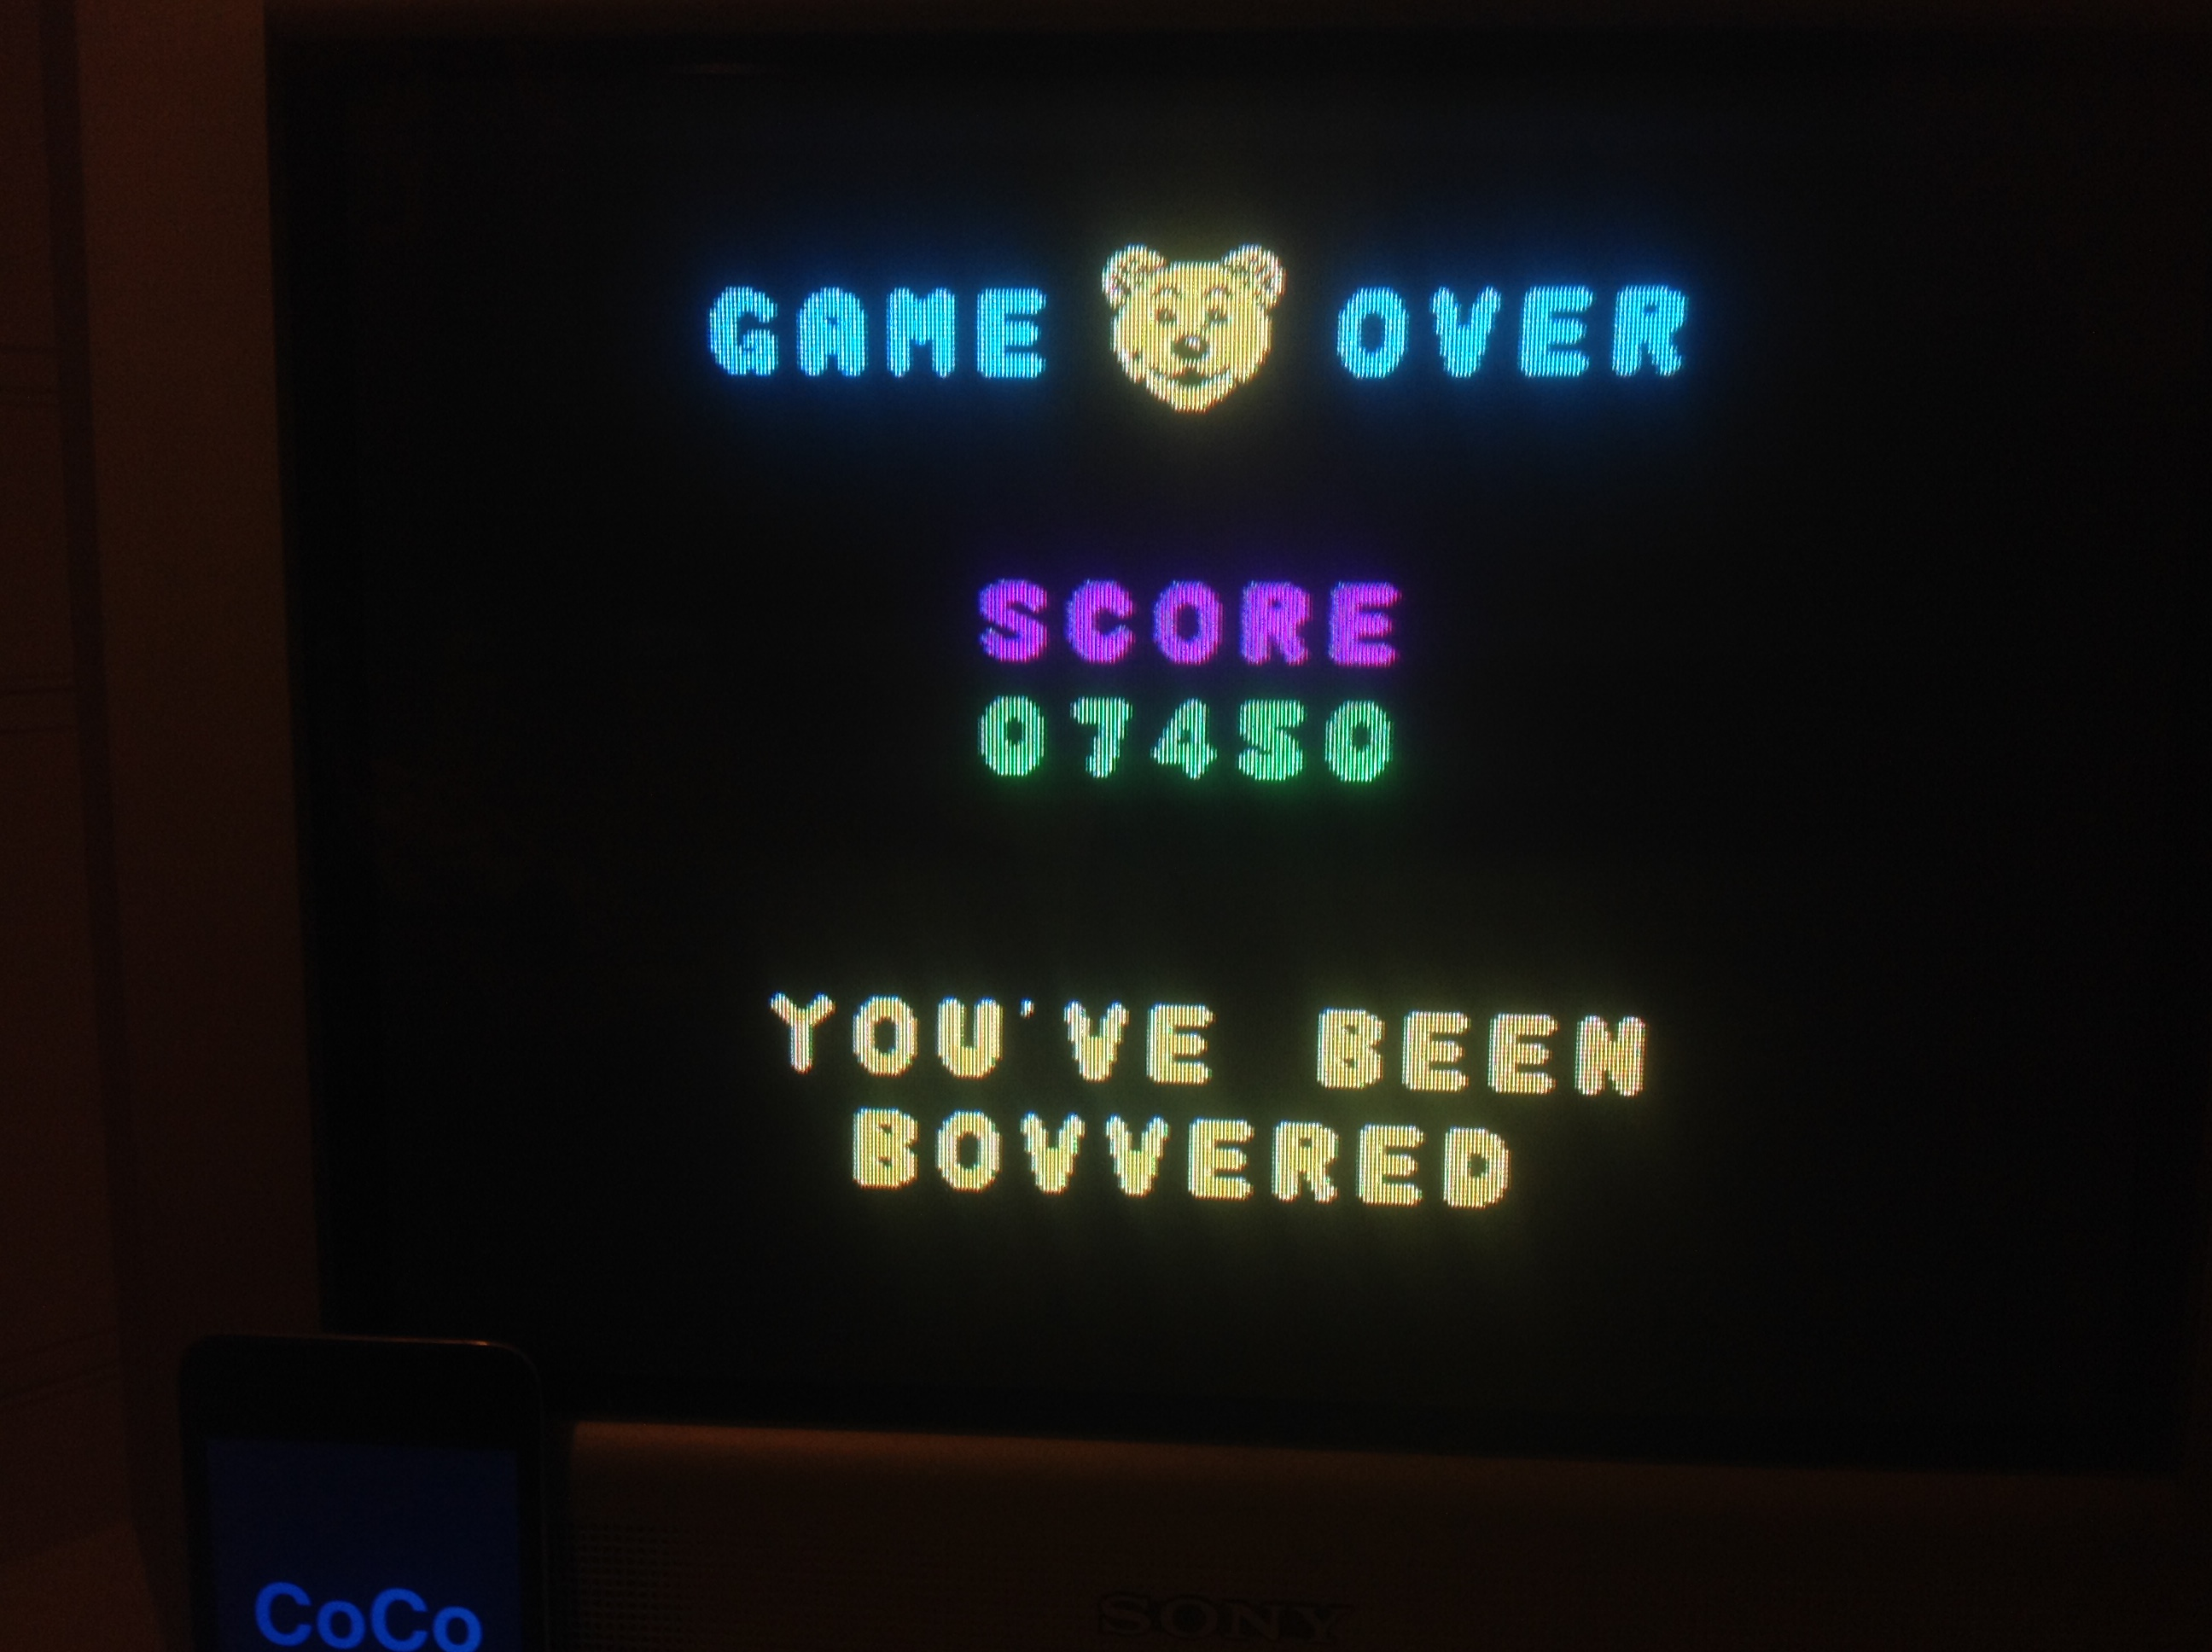 CoCoForest: Bear Bovver [Big Bear Mode] (ZX Spectrum) 7,450 points on 2016-01-22 15:52:17